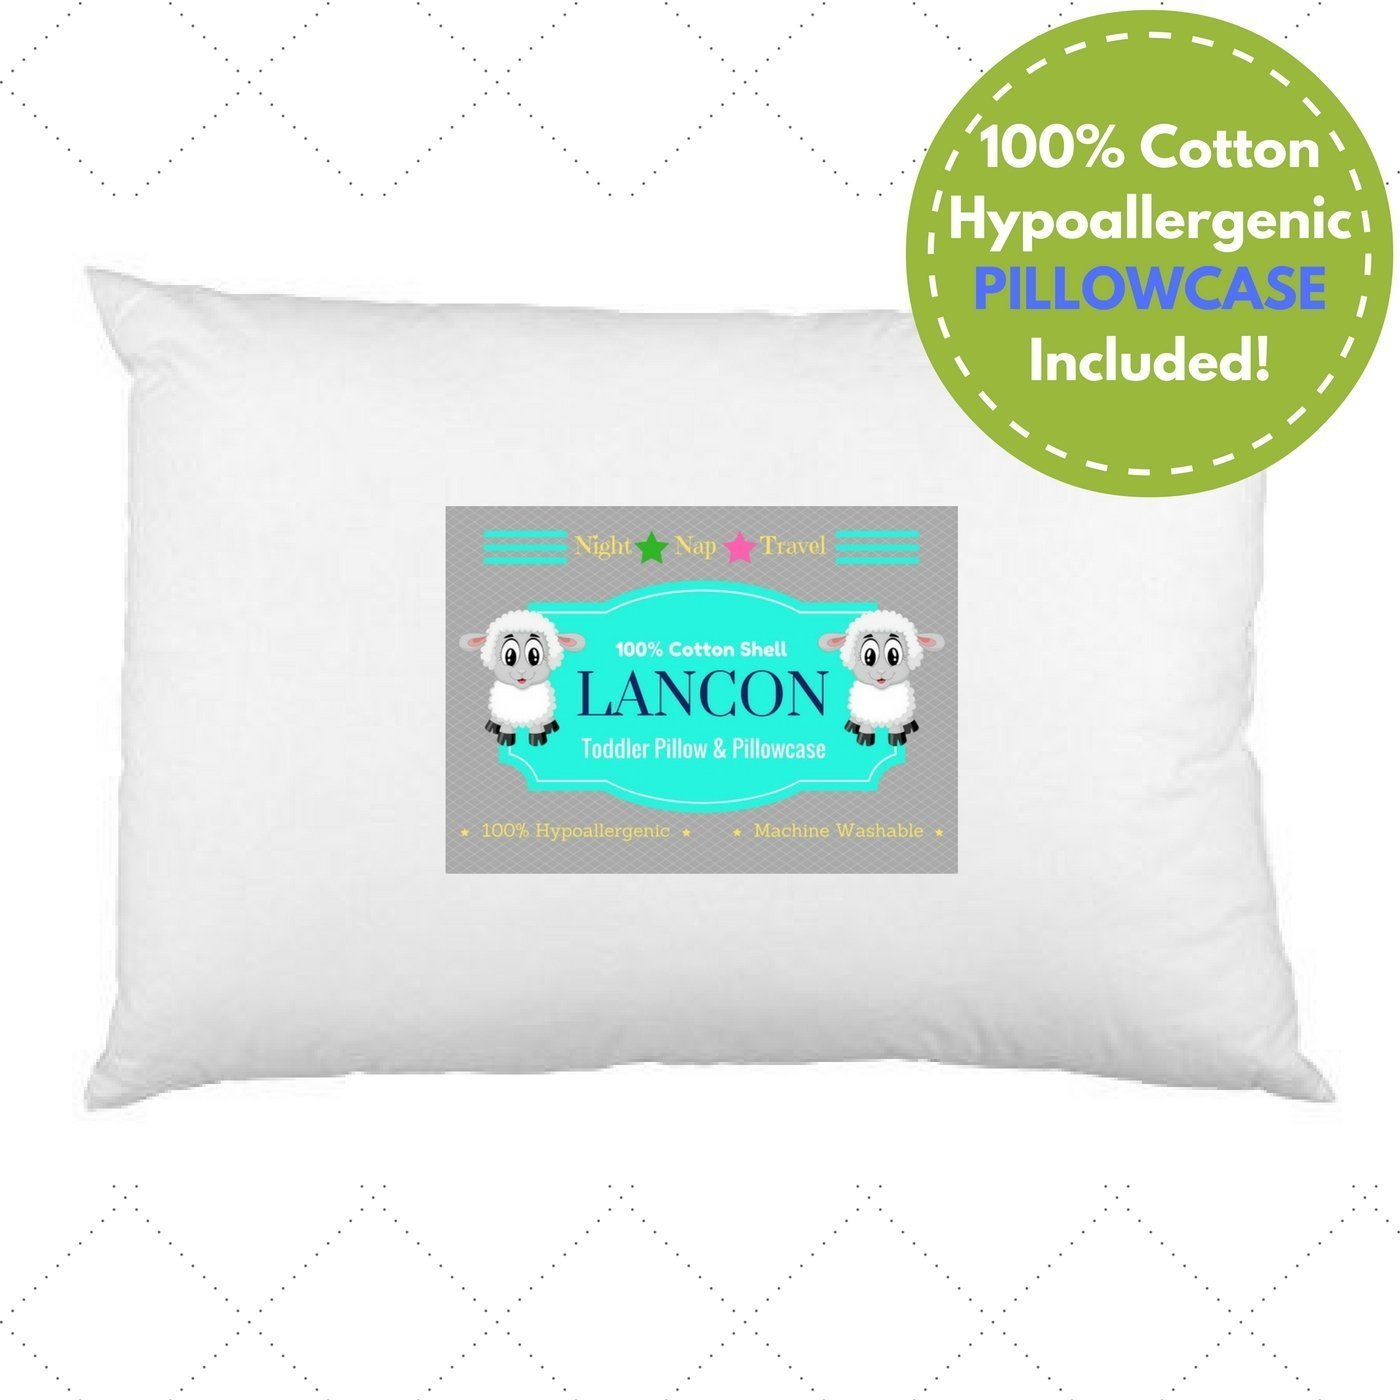 Perfect Small Pillow for Kids Age 2+ 100/% Cotton White 13 x 18 Premium Quality Toddler Pillow with Pillowcase by LANCON Kids Soft Hypoallergenic /& Machine Washable